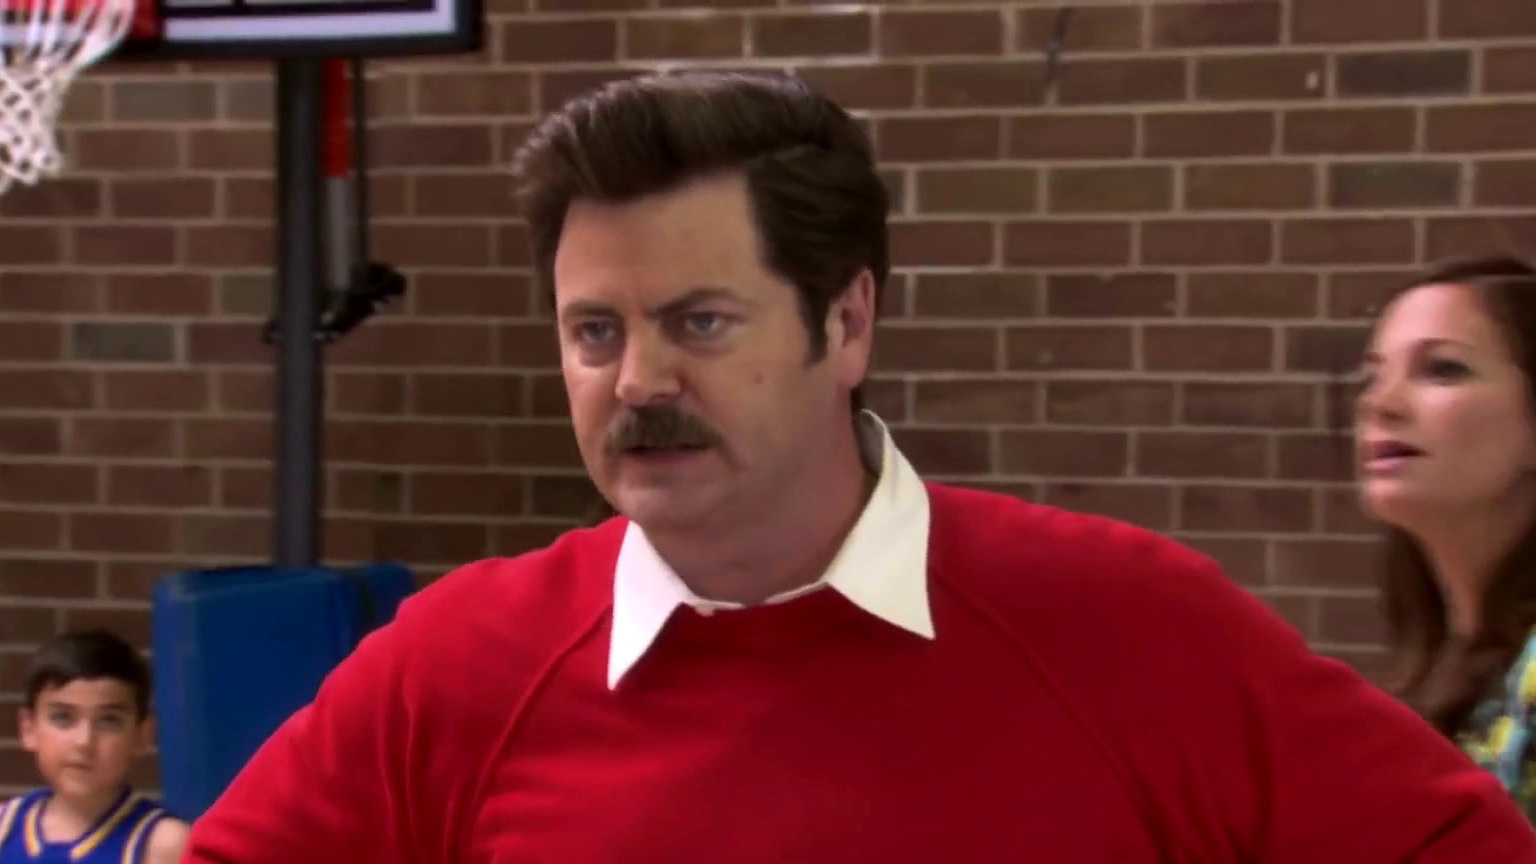 Parks And Recreation: Ron Swanson's Pyramid Of Greatness